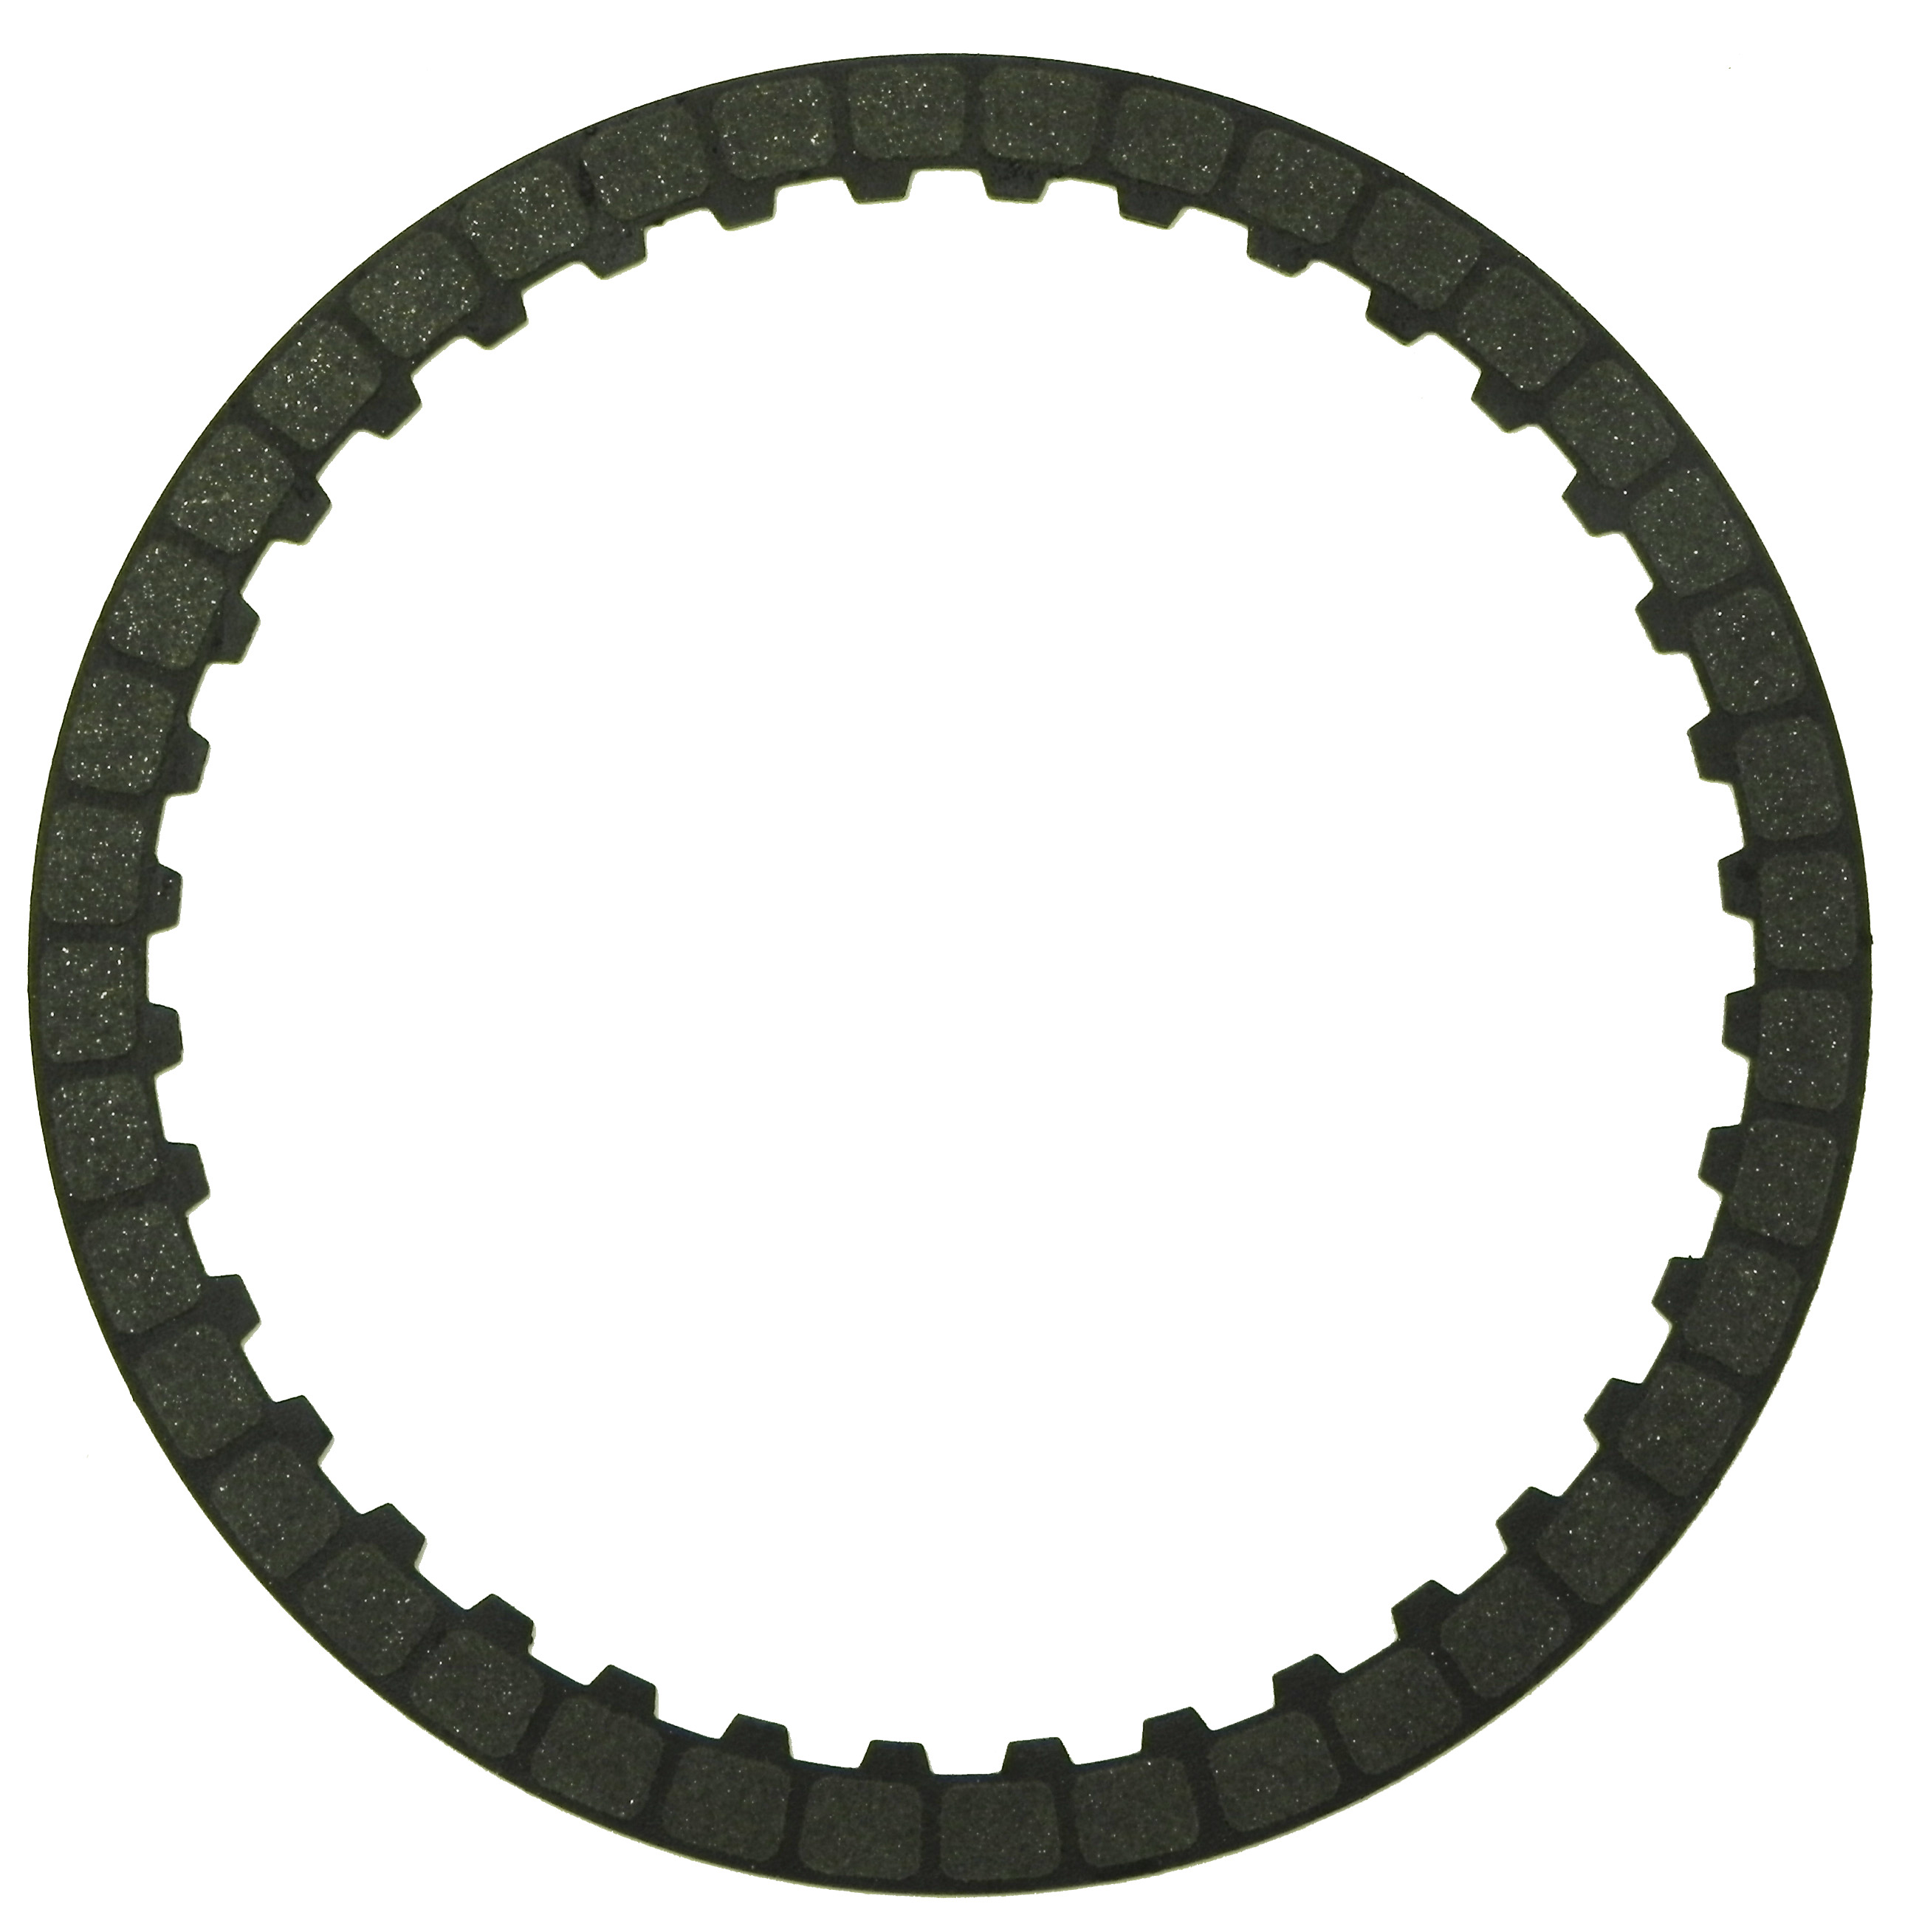 R560655 | 2009-ON Friction Clutch Plate High Energy Overdrive Clutch High Energy